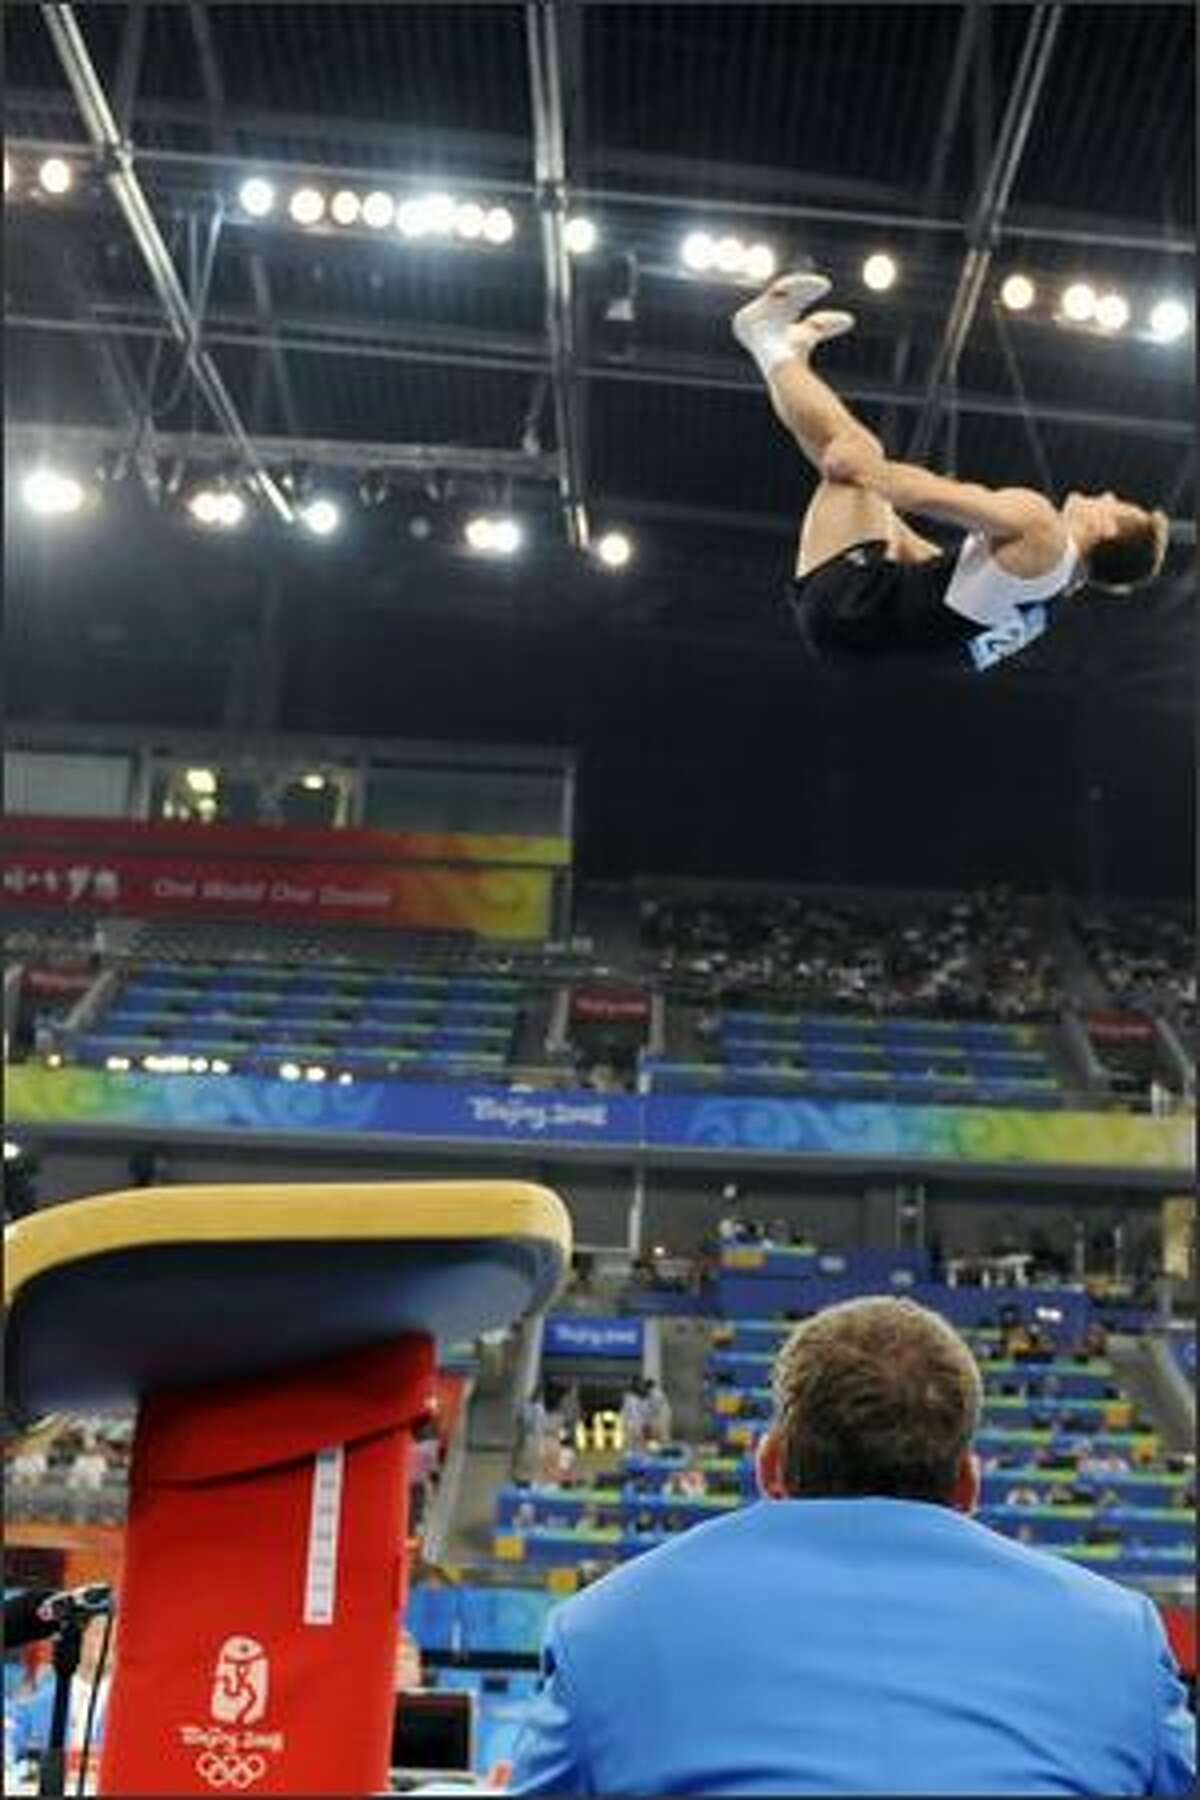 Poland's Leszek Blanik competes in the men's vault final of the artistic gymnastics event of the Beijing 2008 Olympic Games in Beijing on Monday. Poland's Leszek Blanik won the gold, France's Thomas Bouhail the silver and Russia's Anton Golotsutskov the bronze.